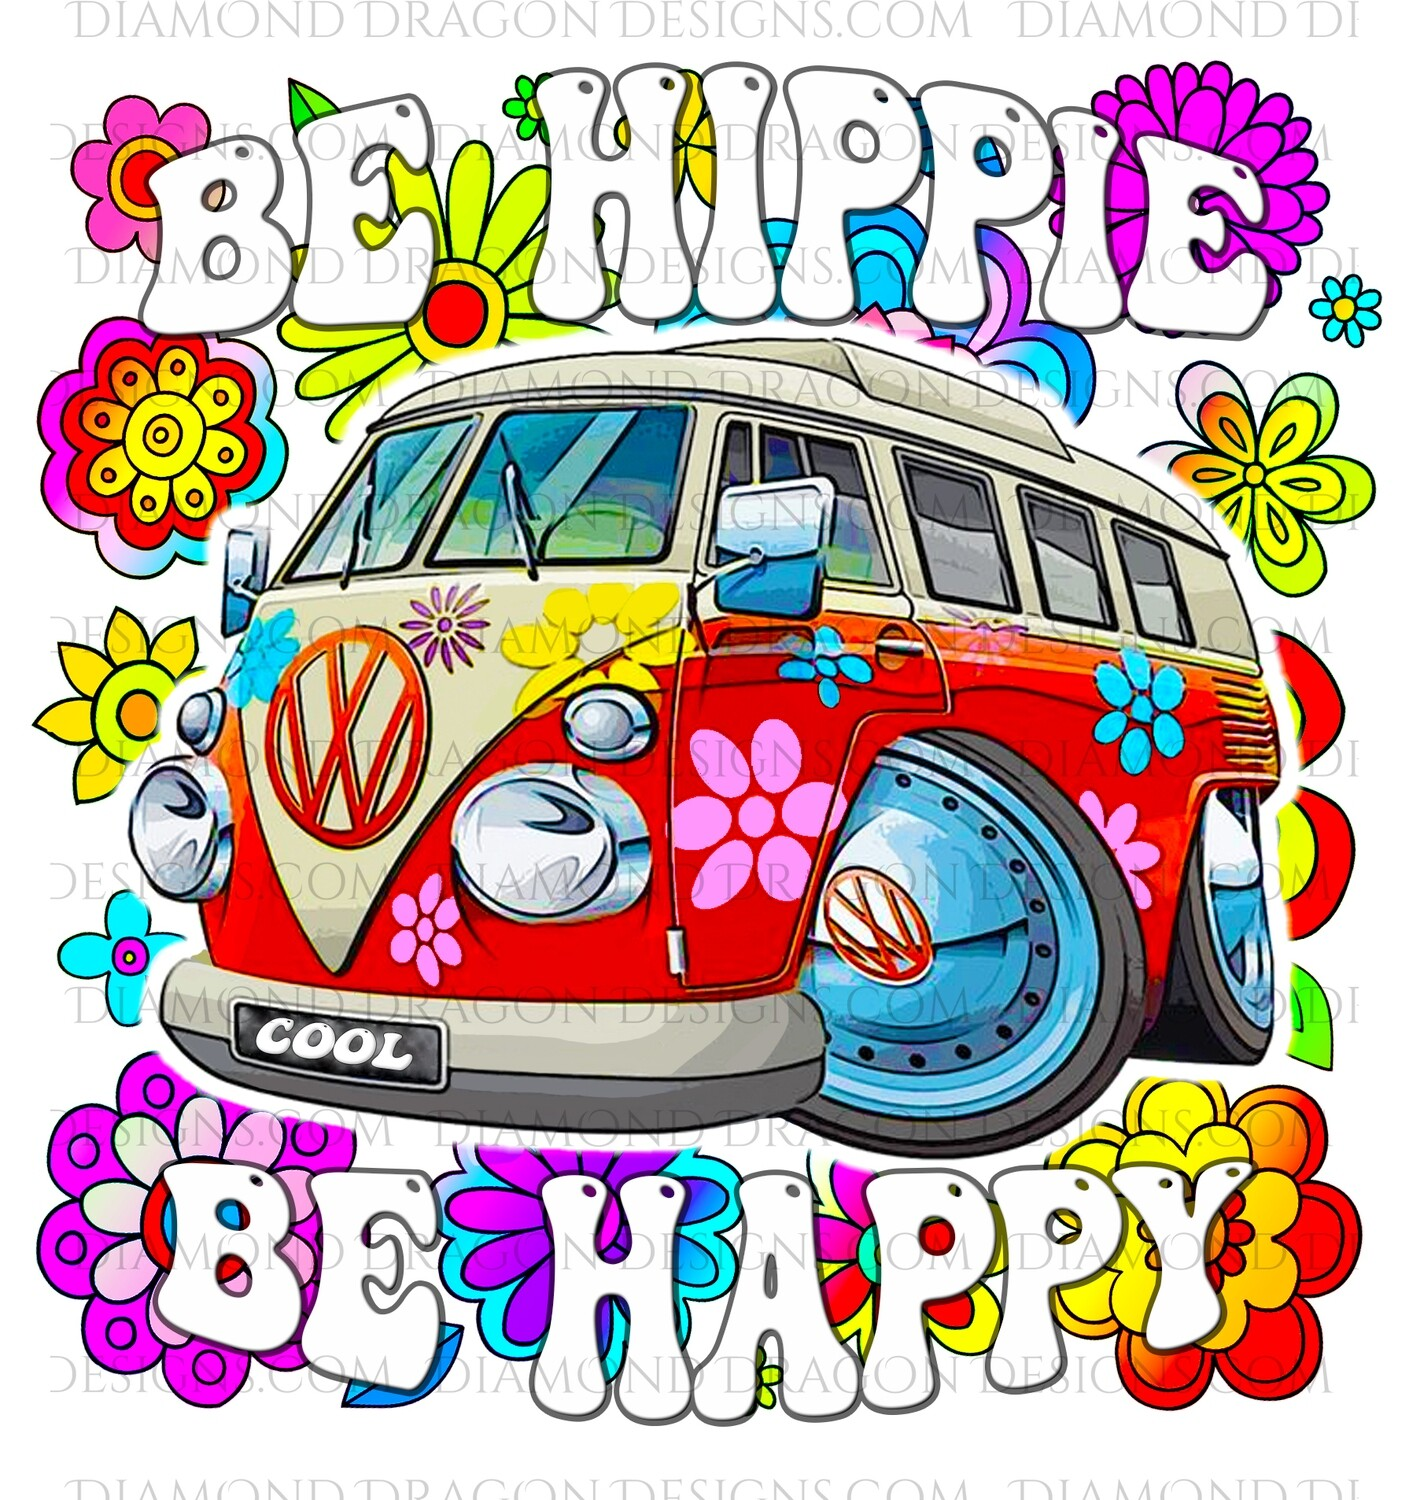 Quotes - Be Hippie, Be Happy, 70s, VW Bus, Retro Red, Waterslide